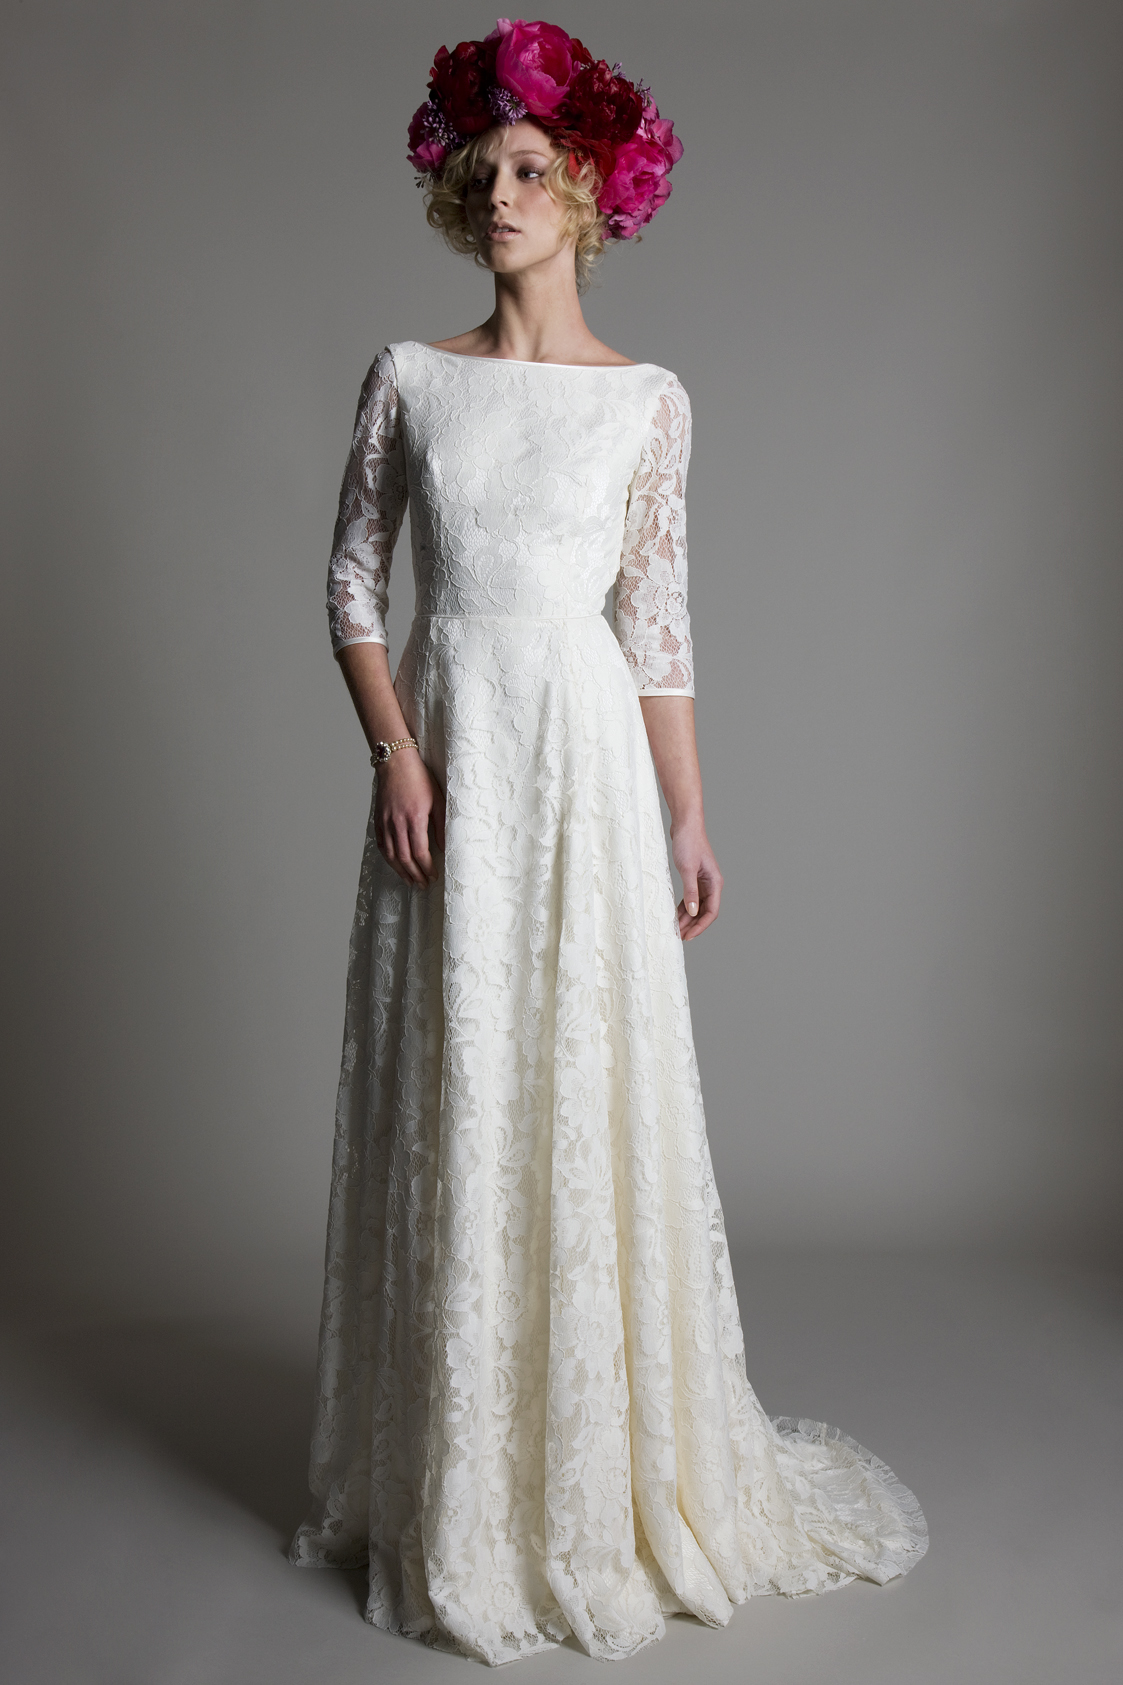 Antonia ivory lace bridal wedding dress by Halfpenny London